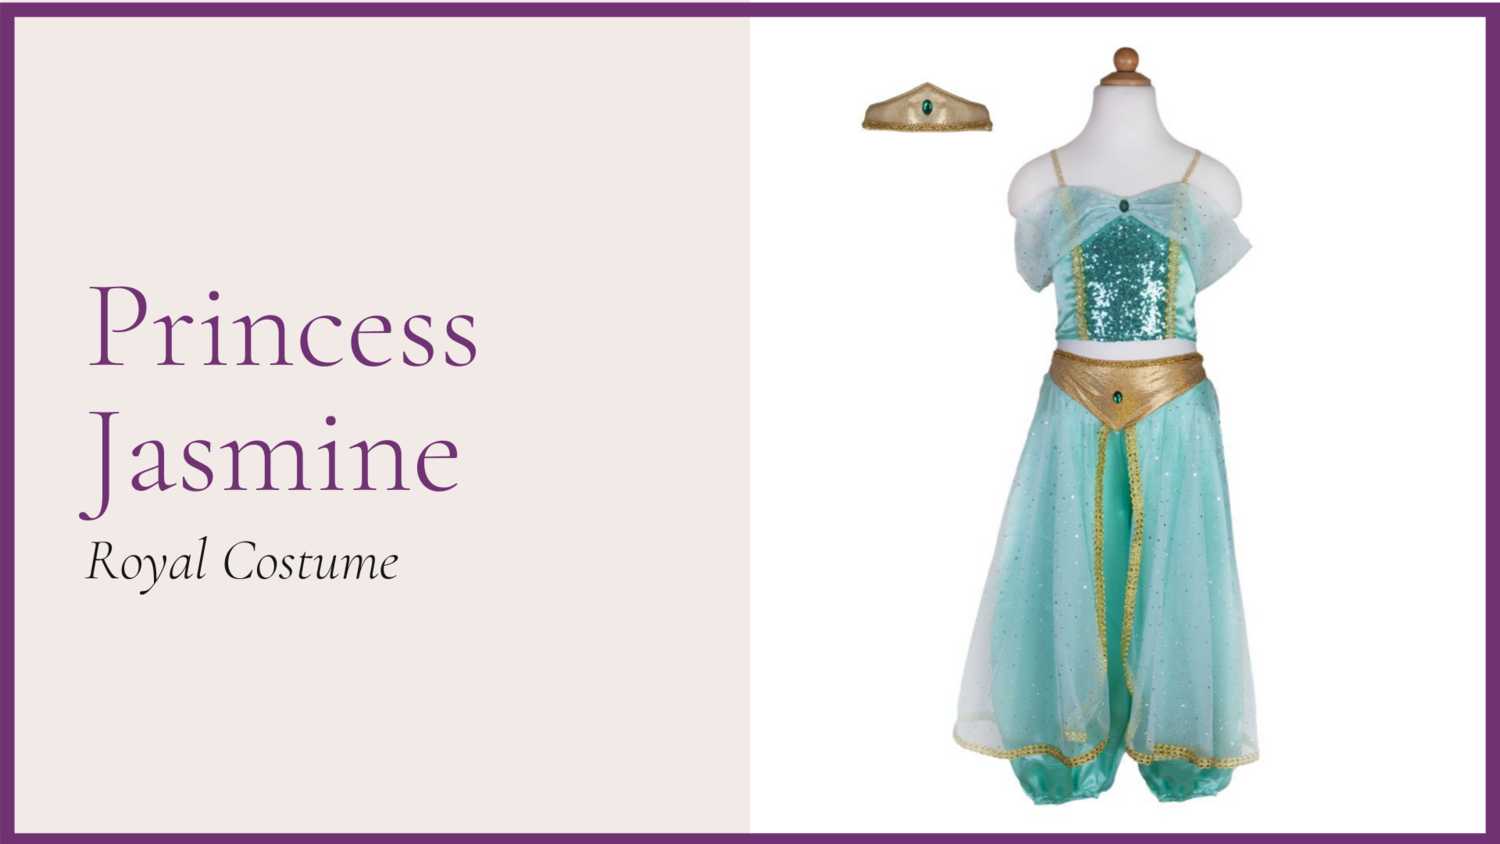 STORYBOOK: The Princess Jasmine - Royal Costume